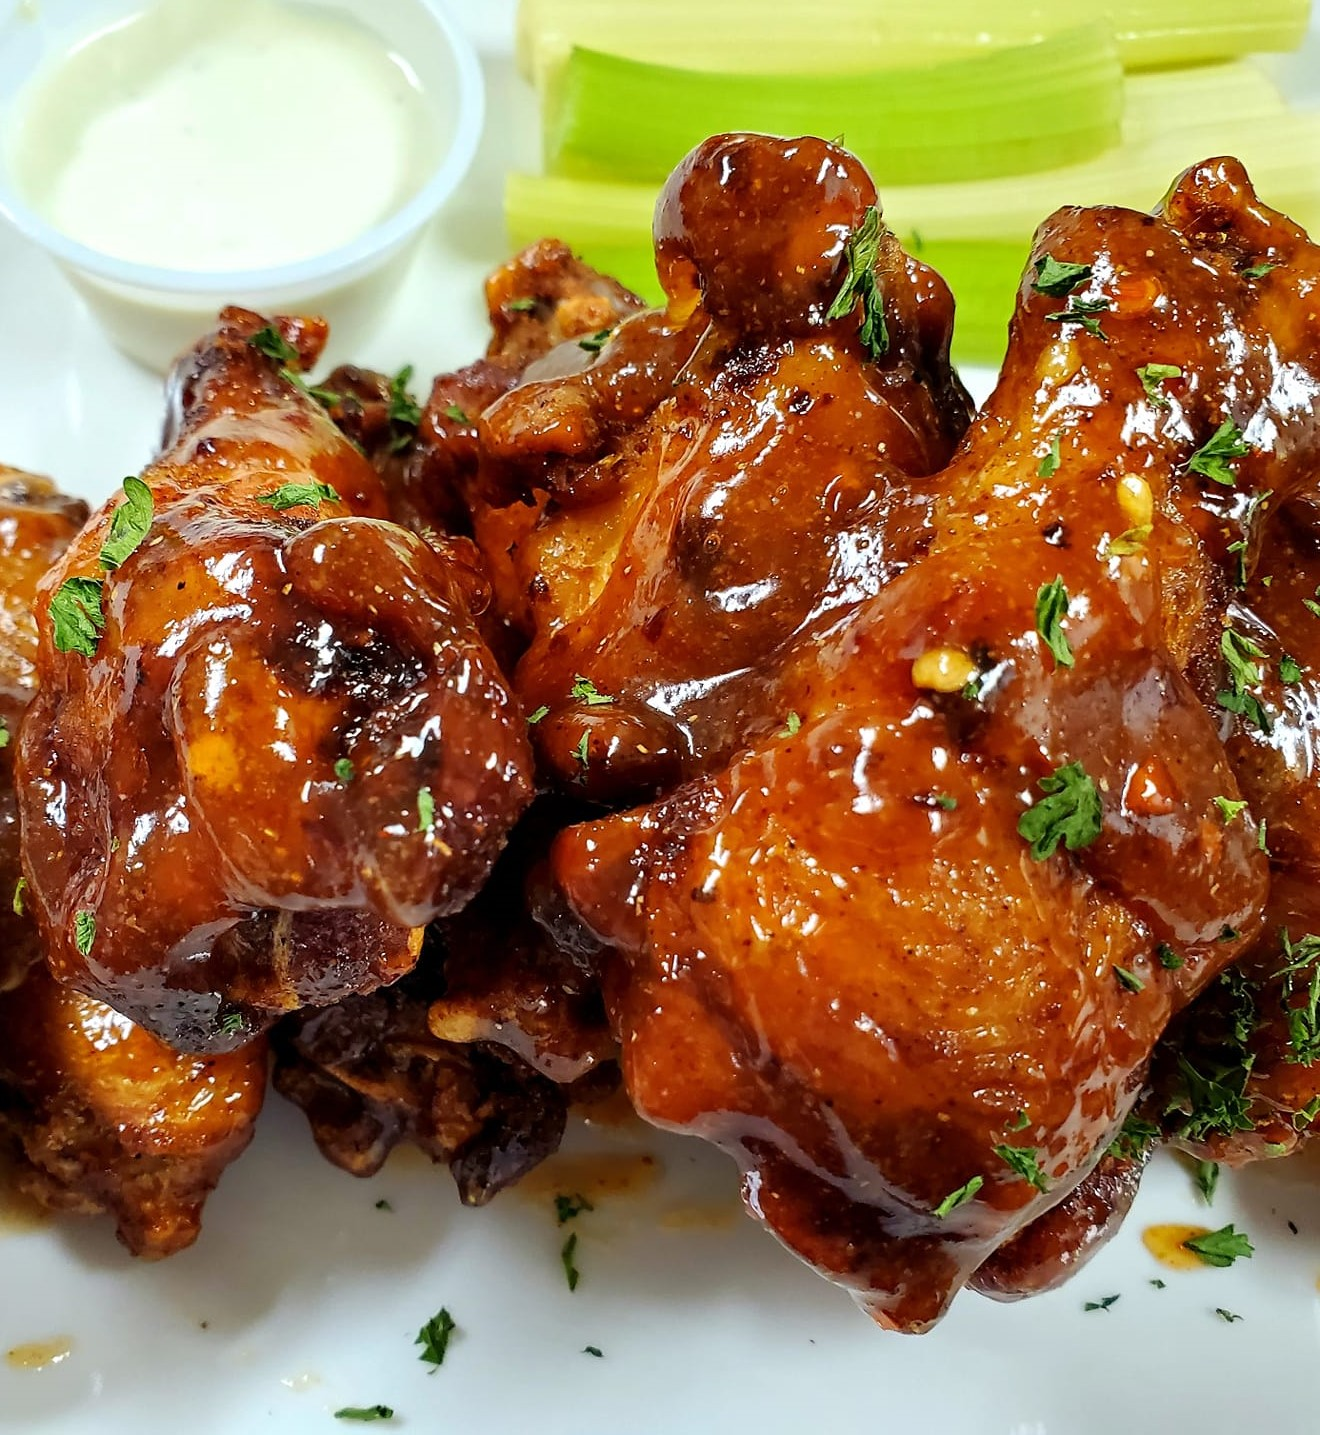 assortment of chicken wings topped with garnish